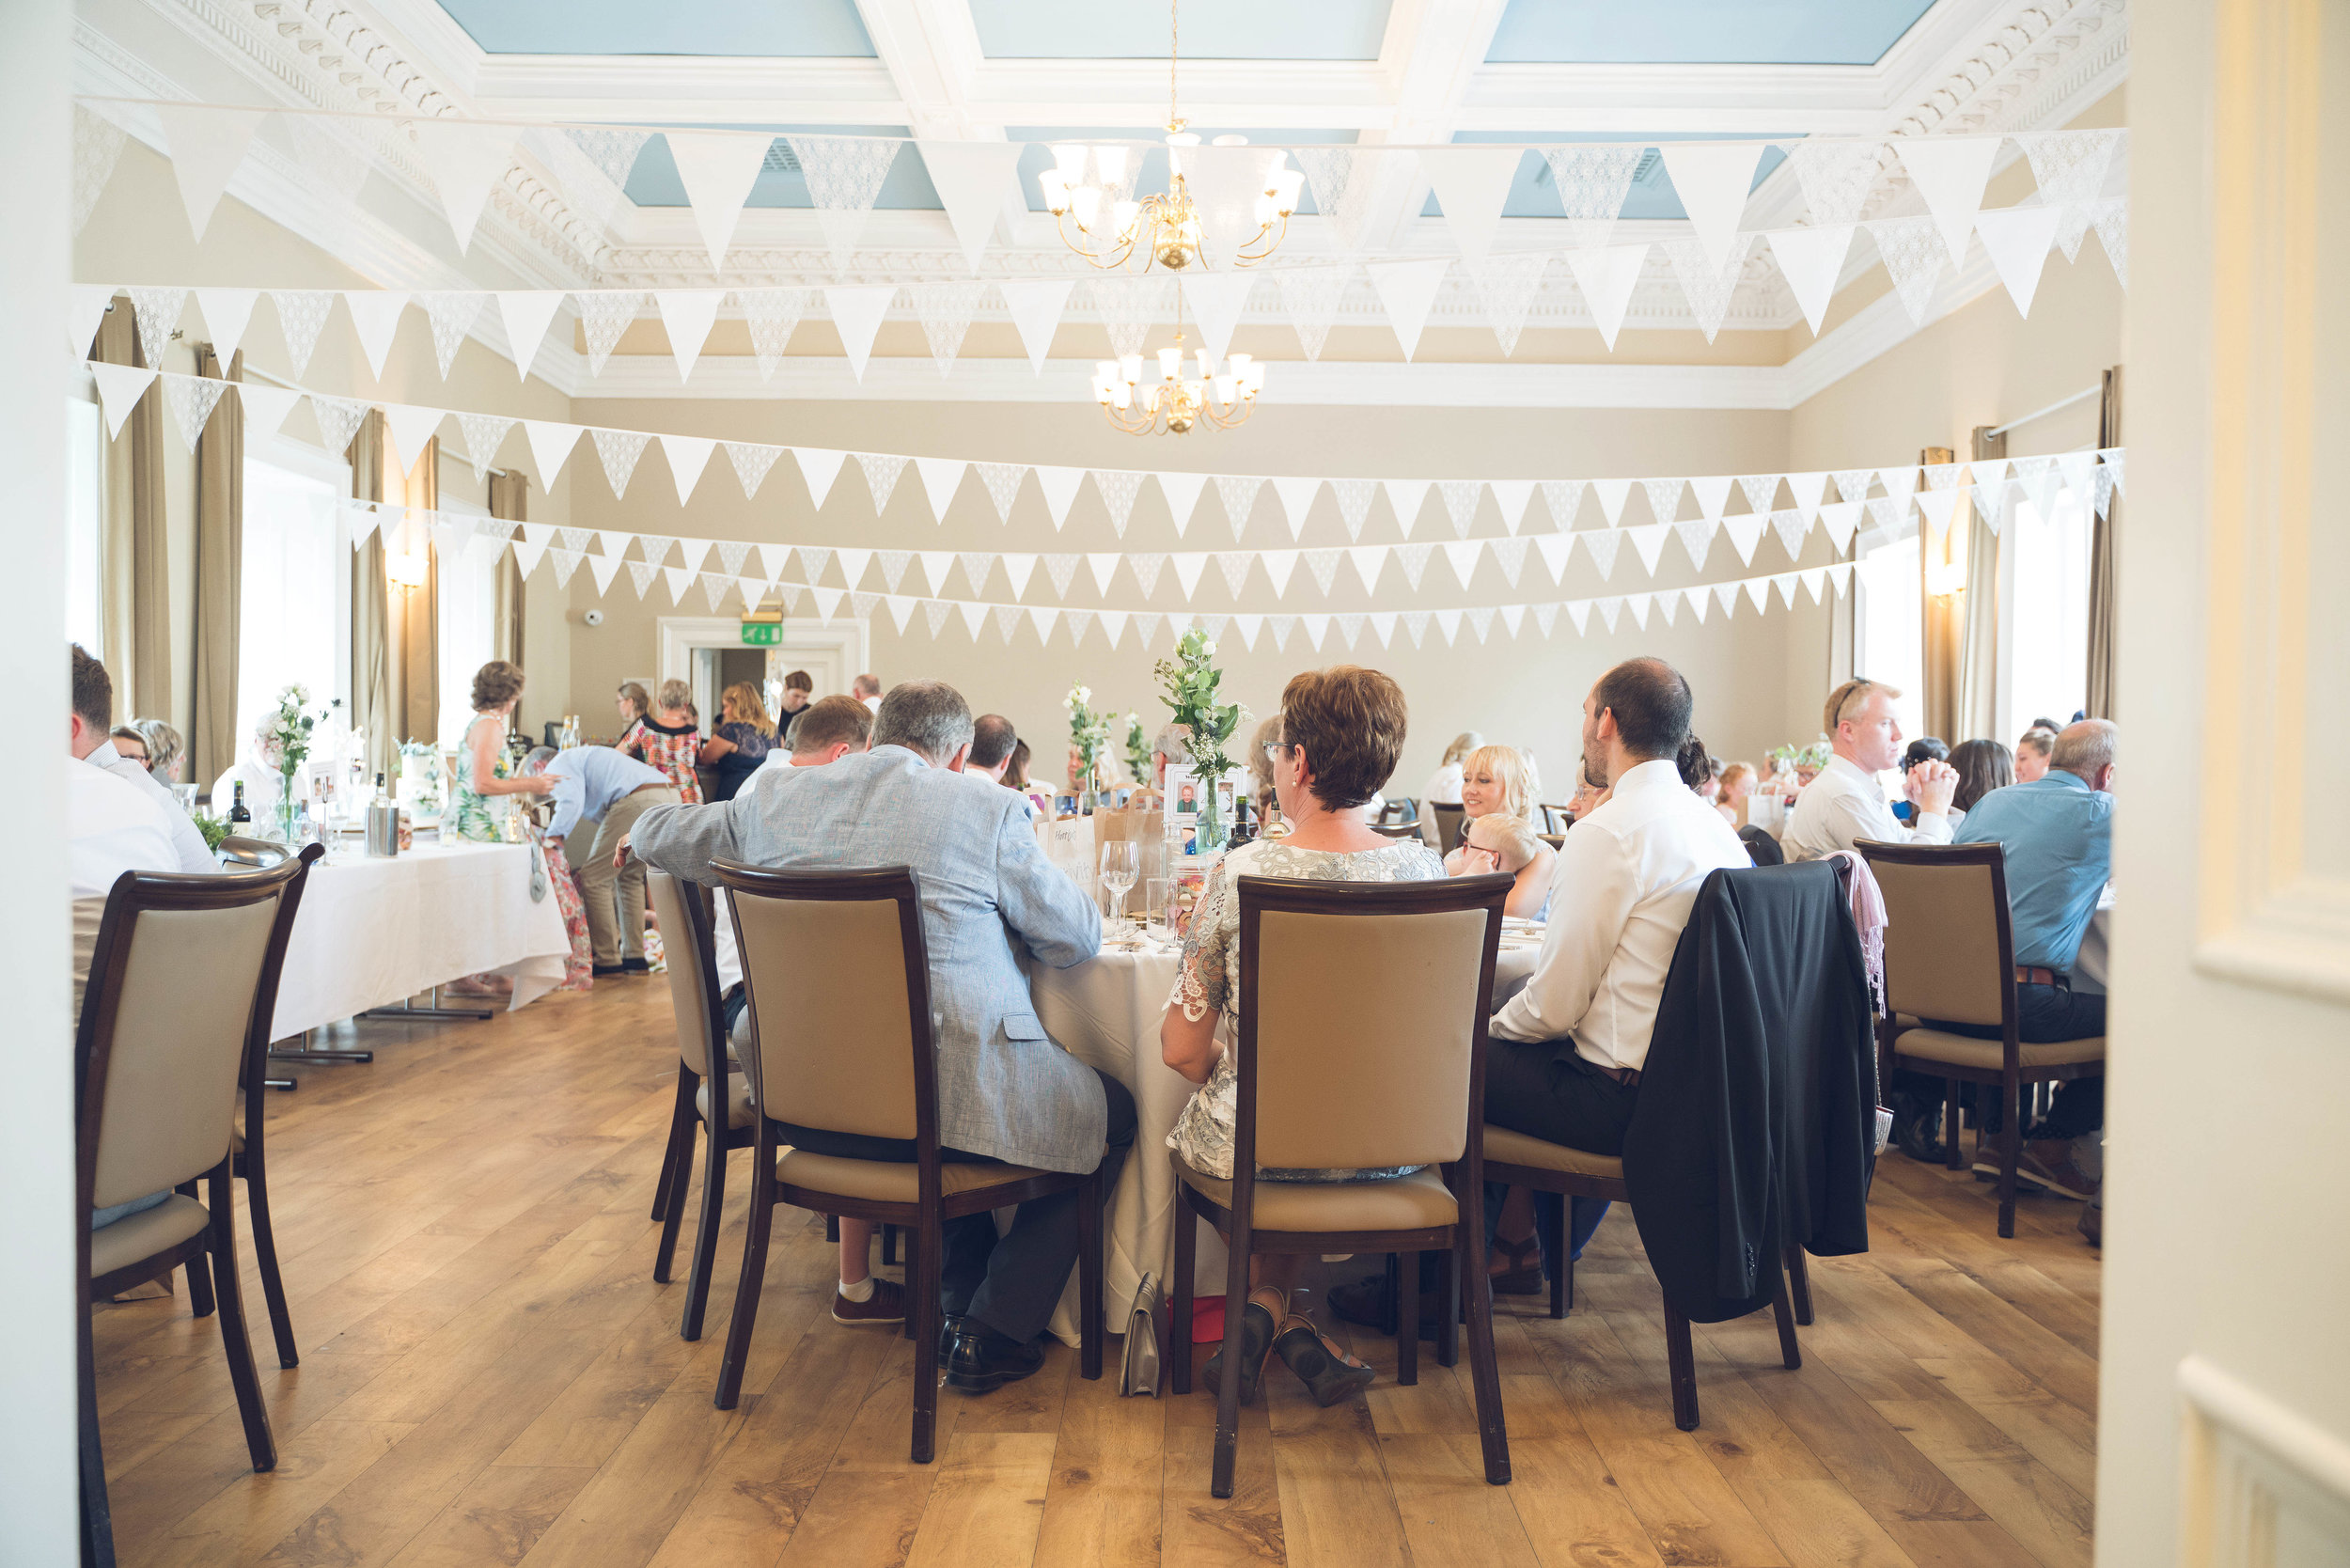 Bath Function Rooms directly above the Brasserie restaurant